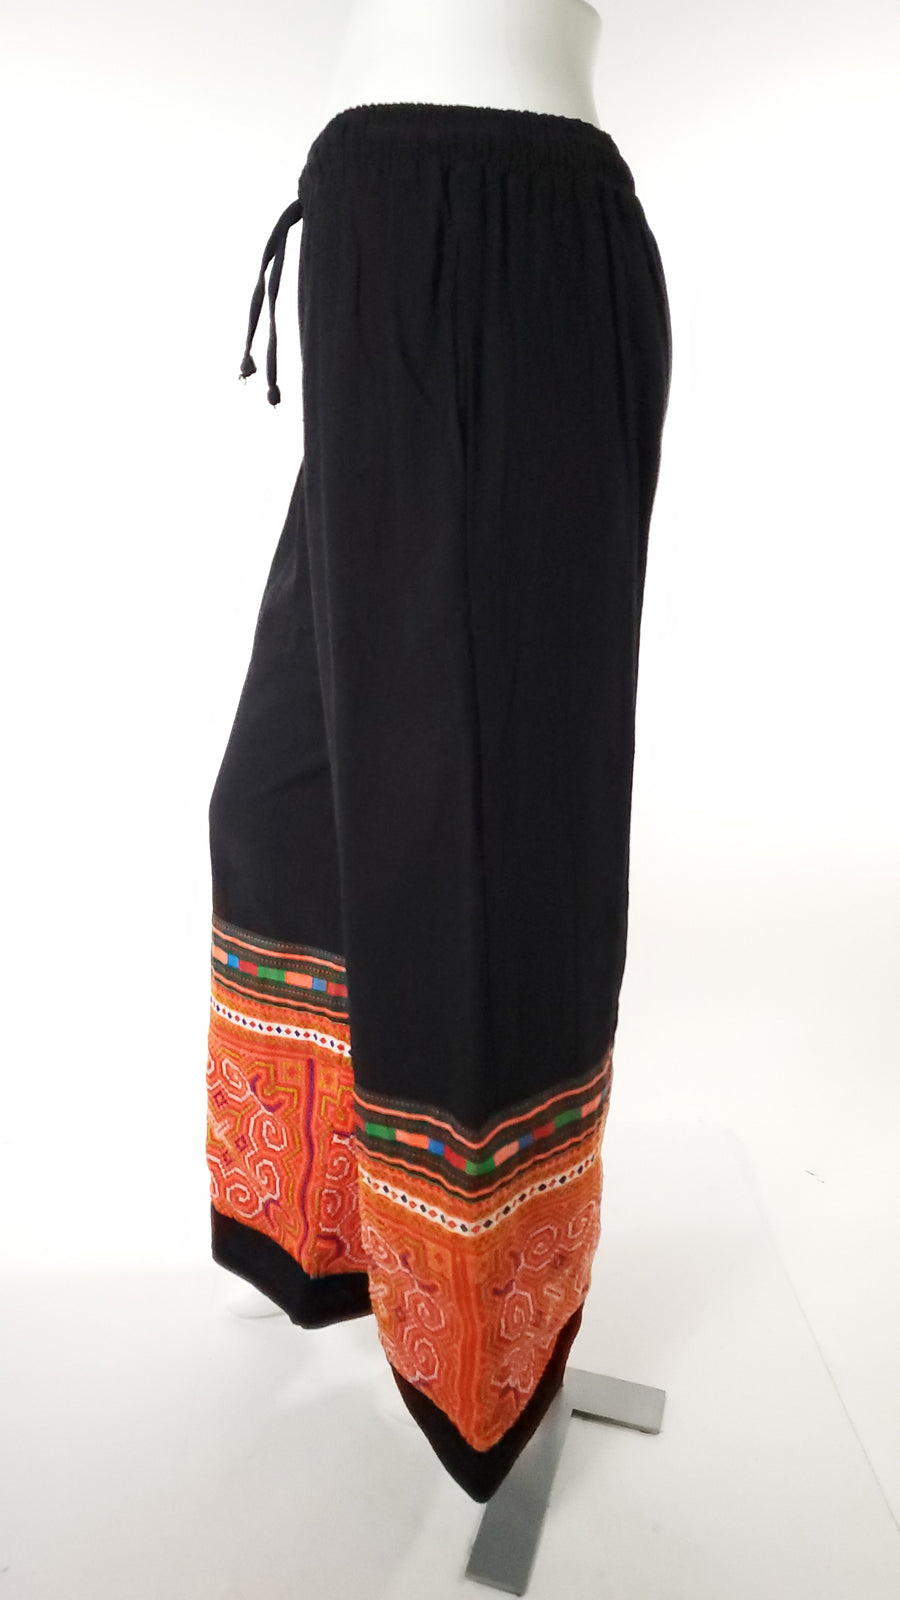 Upcycled Tribal Fabric Pants in Black-The High Thai-The High Thai-Yoga Pants-Harem Pants-Hippie Clothing-San Diego